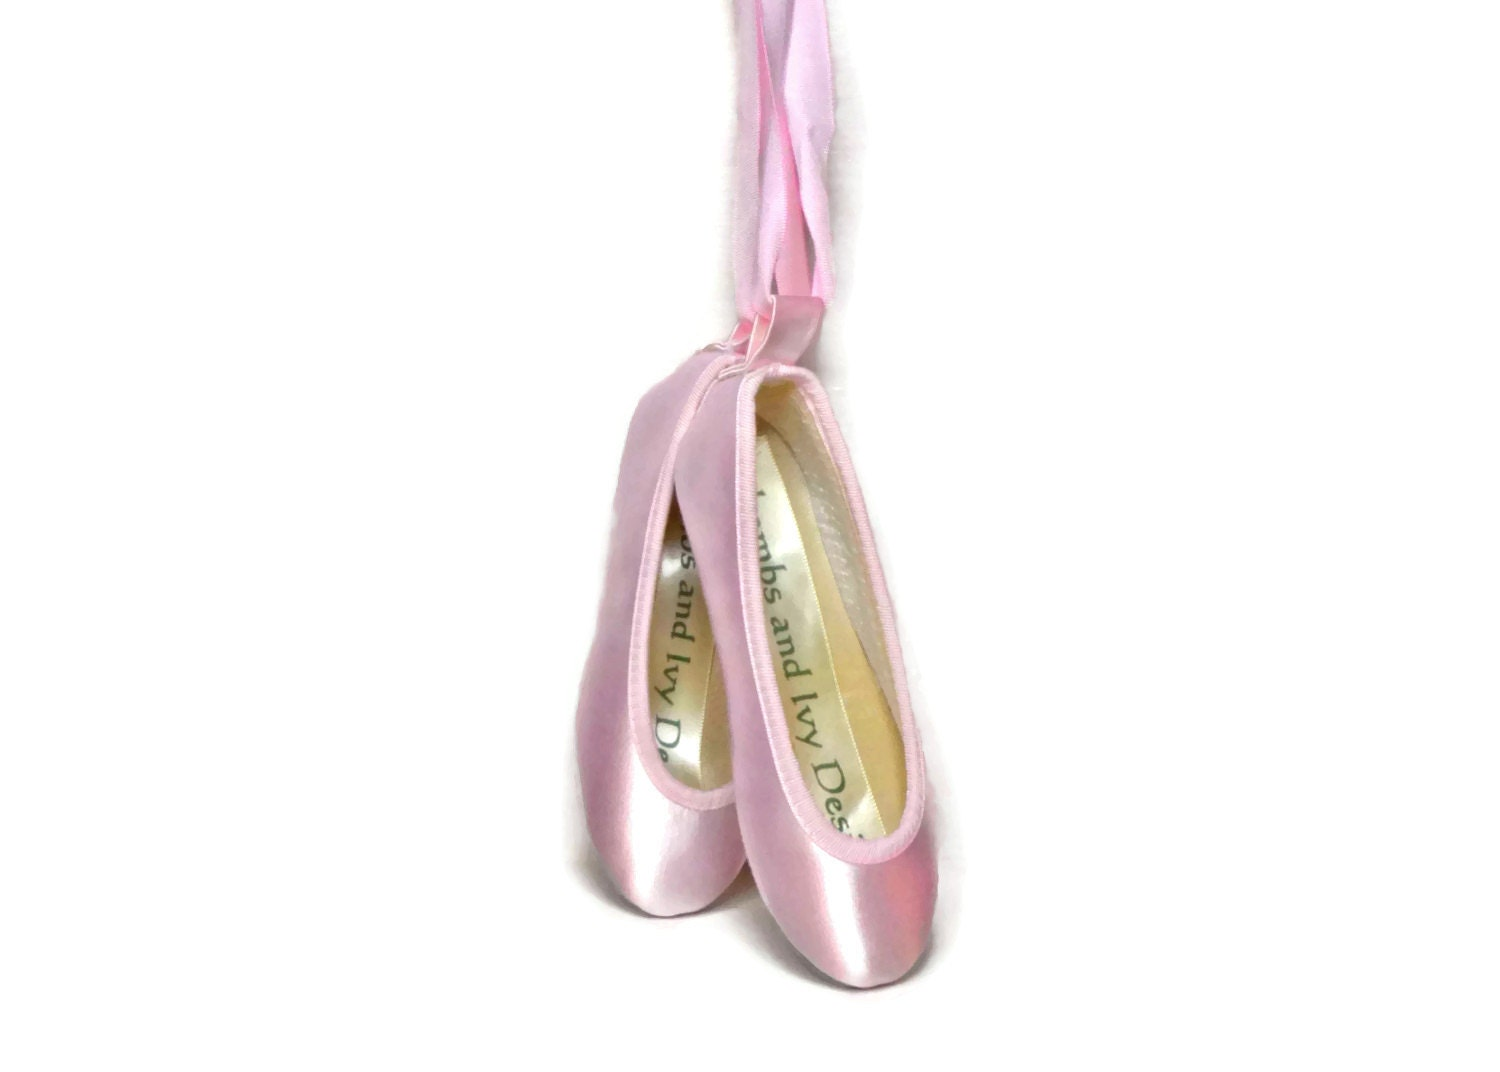 Girls' Ballet Dance Shoes. Store availability. Search your store by entering zip code or city, state. Go. Sort. Best match Product - Sansha Pink Ballet Split Leather Sole Ballet Shoes Little Girls 5M-7M. Product Image. Price $ Product Title. Sansha Pink Ballet Split Leather Sole Ballet Shoes Little Girls .